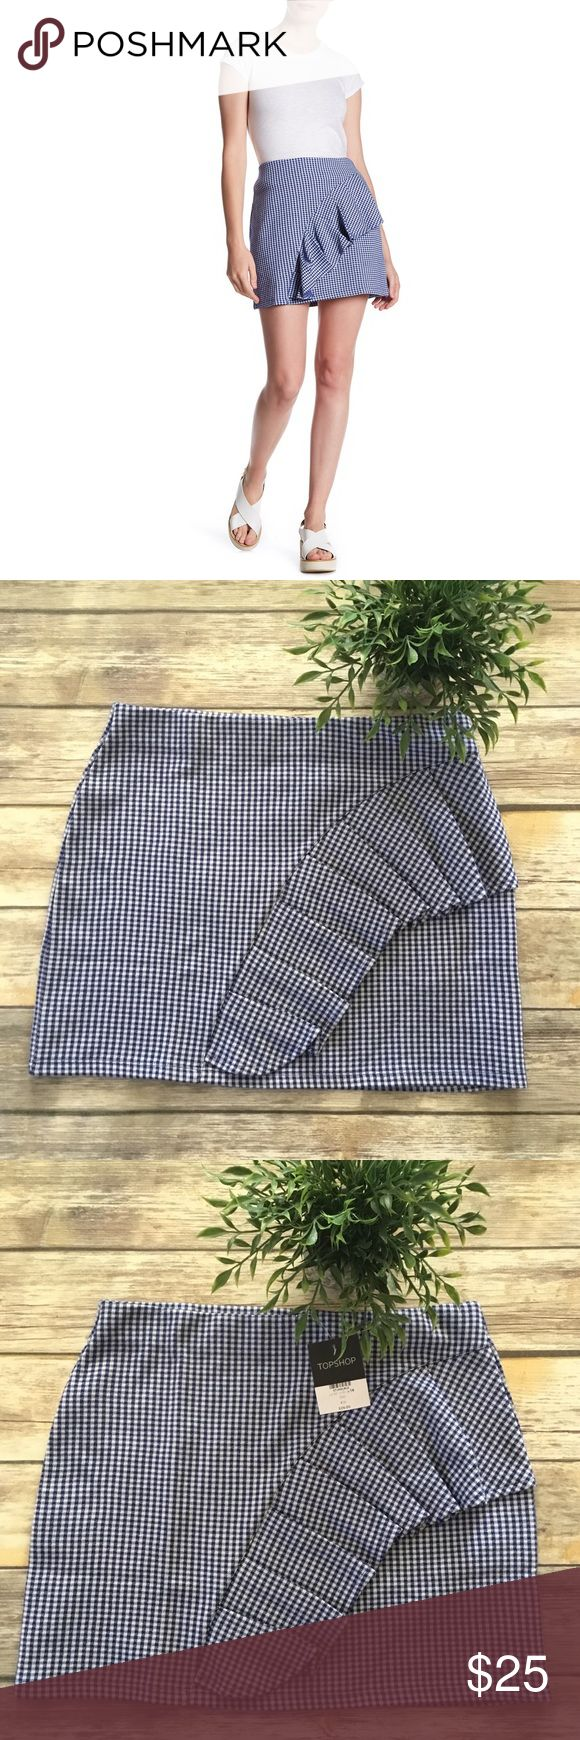 Topshop Gingham Ruffle Jersey Mini Skirt This size 10 Topshop Gingham Ruffle Jersey mini skirt is NWT. The ruffle detail travels from the side seam for a girlie touch. It's 51% Polyester, 49% Cotton and can be machine washed. Topshop Skirts Mini